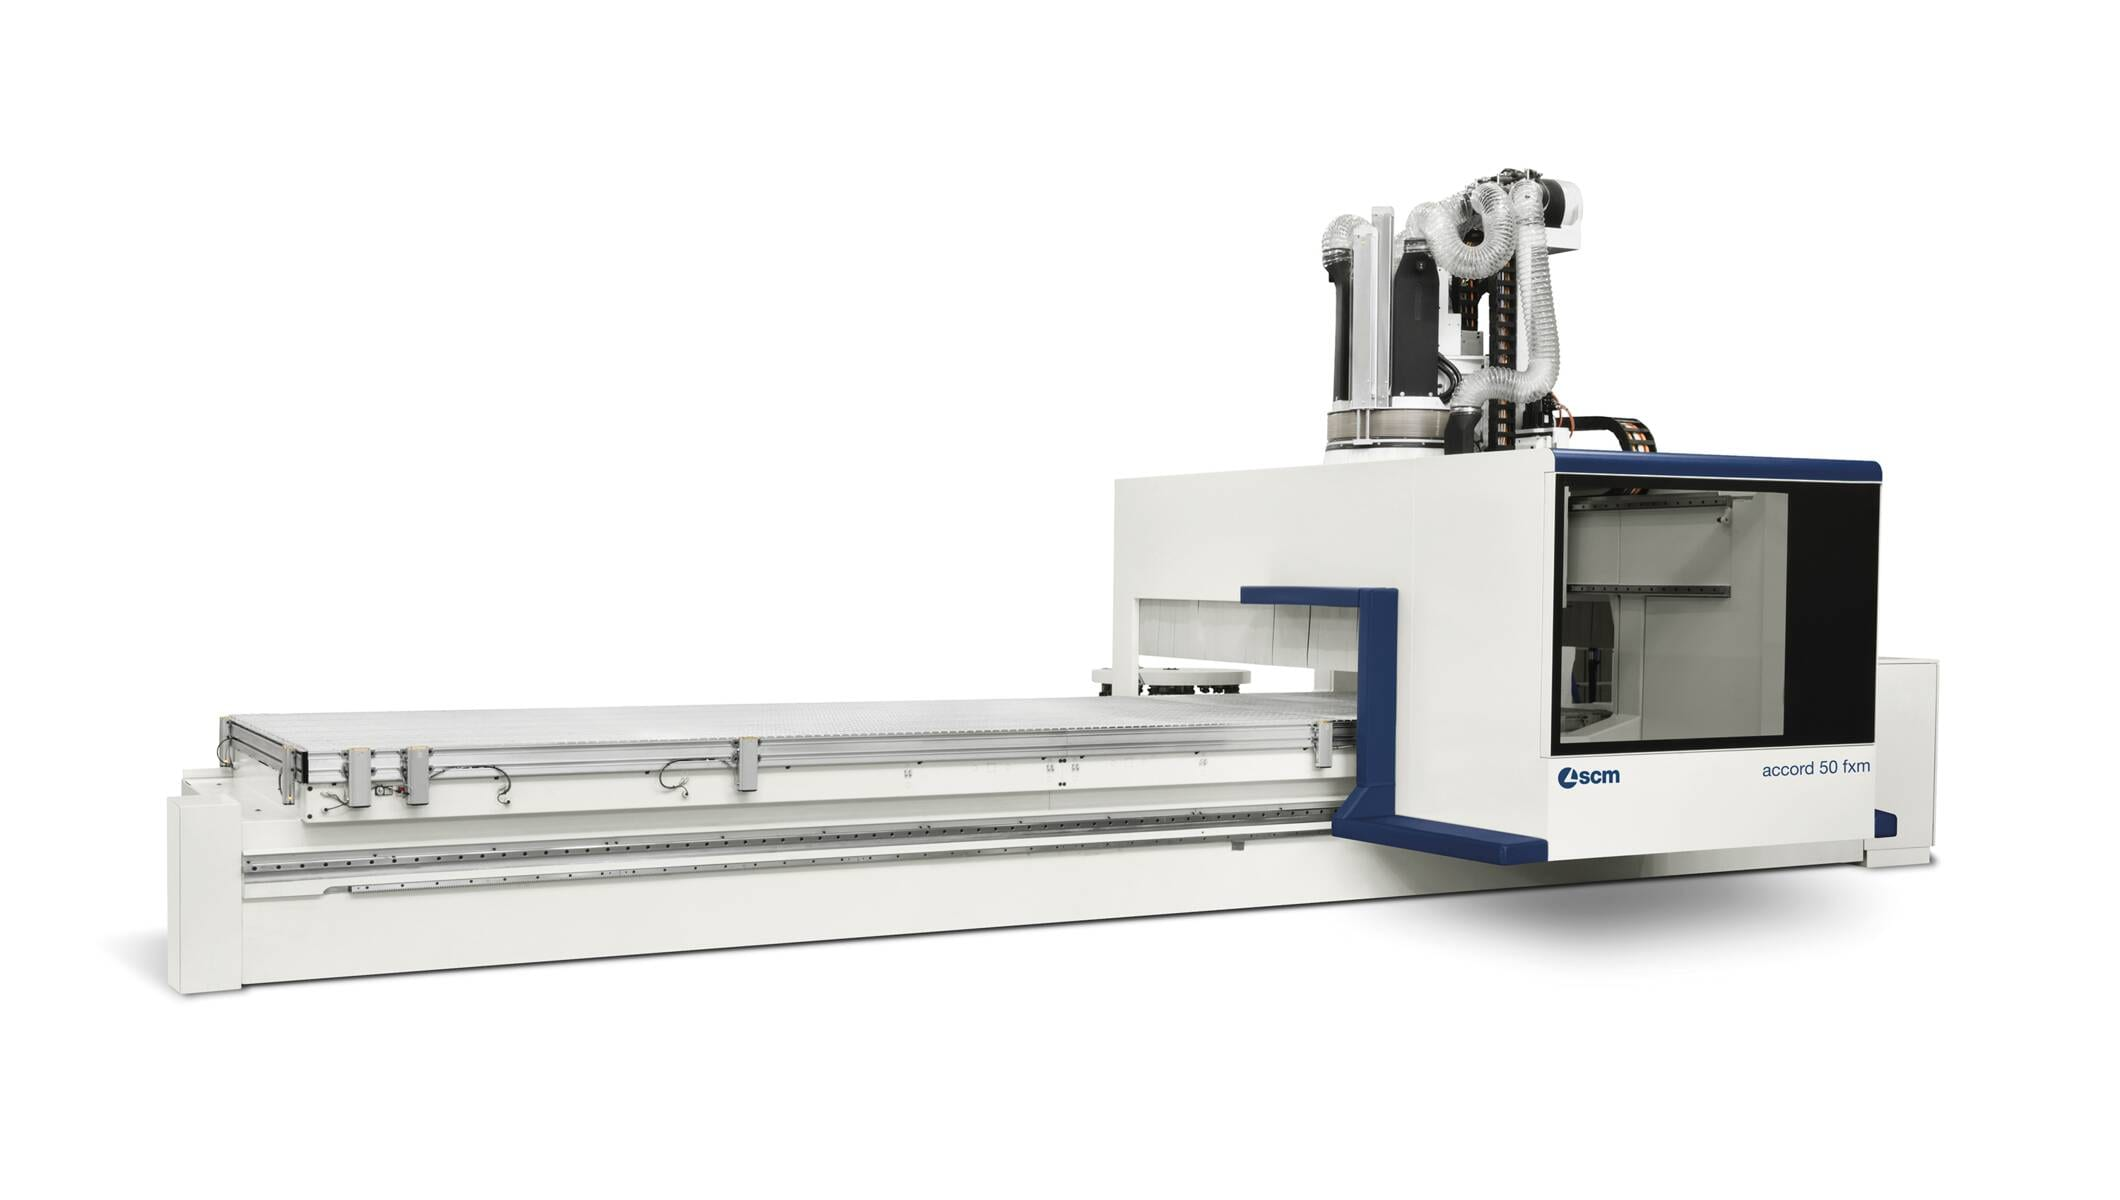 CNC bewerkingscentra's - CNC machines voor timmerindustrie - accord 50 fxm